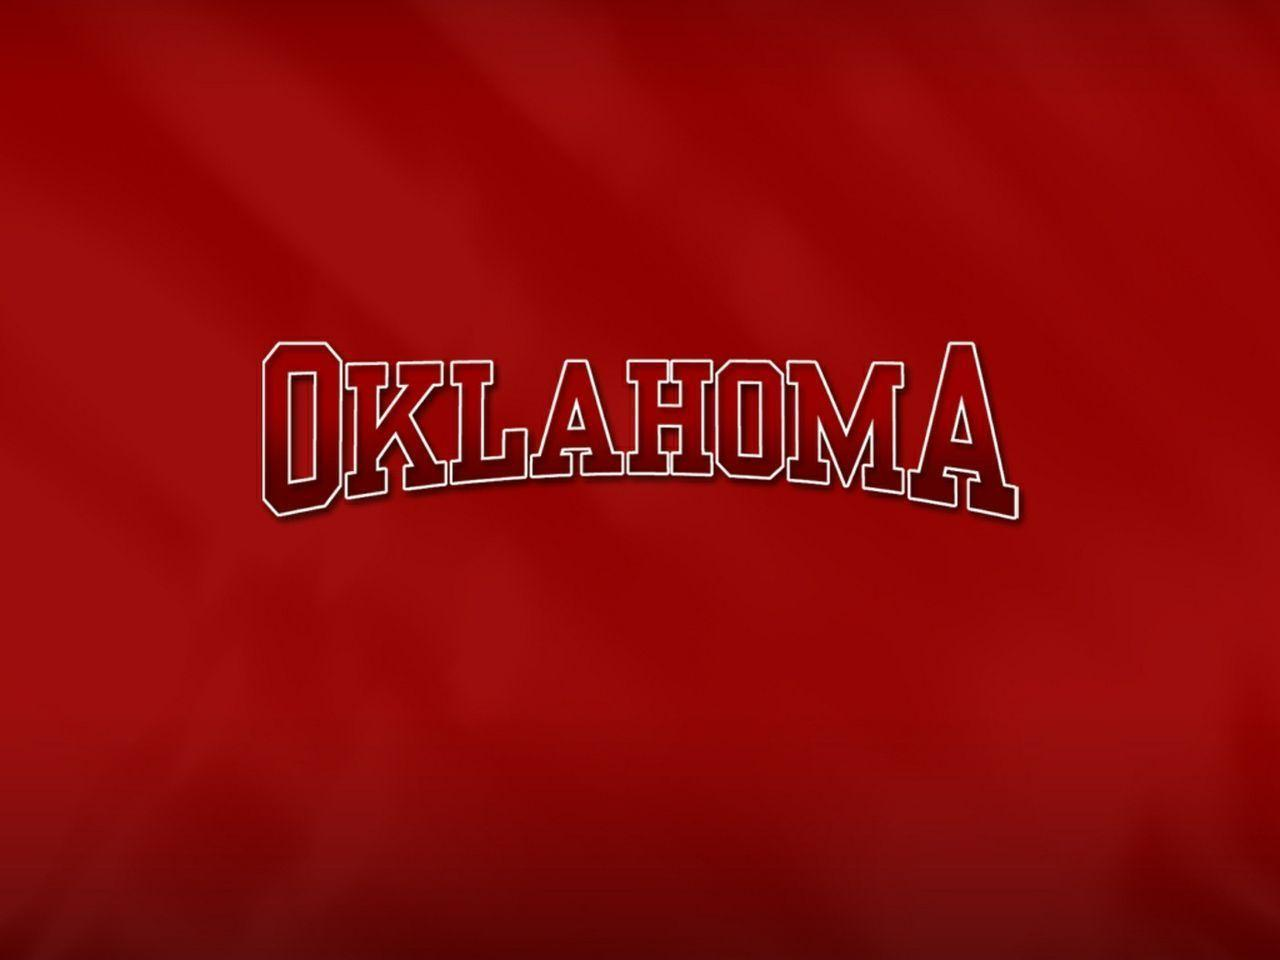 Oklahoma Sooner Wallpapers [1280x960